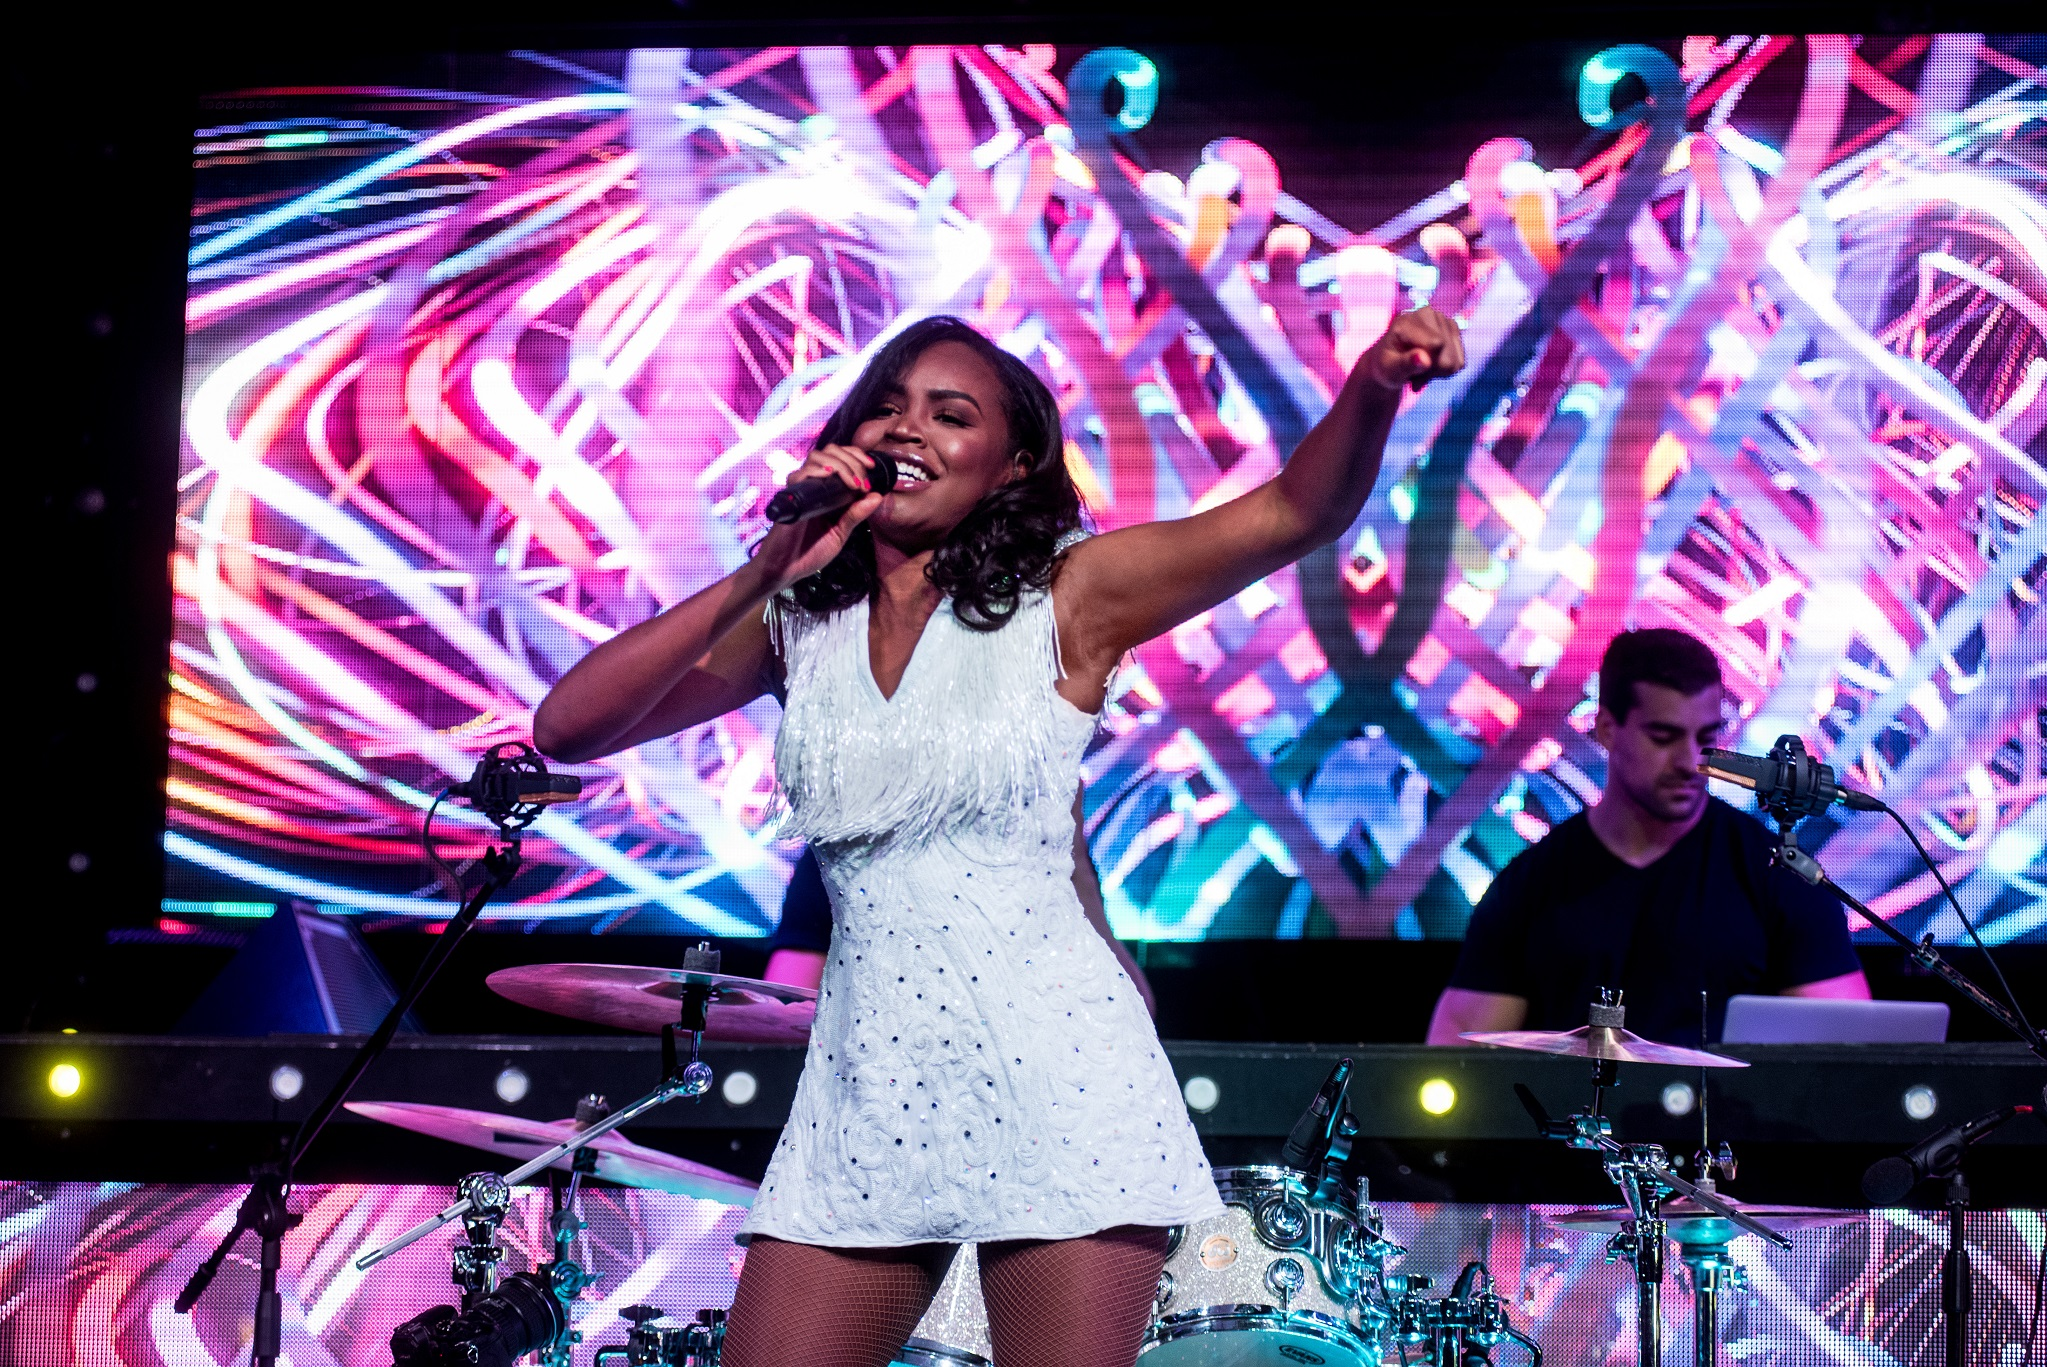 Glorious-Singer-Livetronica Drummer-Producer-Songwriter-Marquee-Nightclub-Video-New York-NY-13lr.jpg